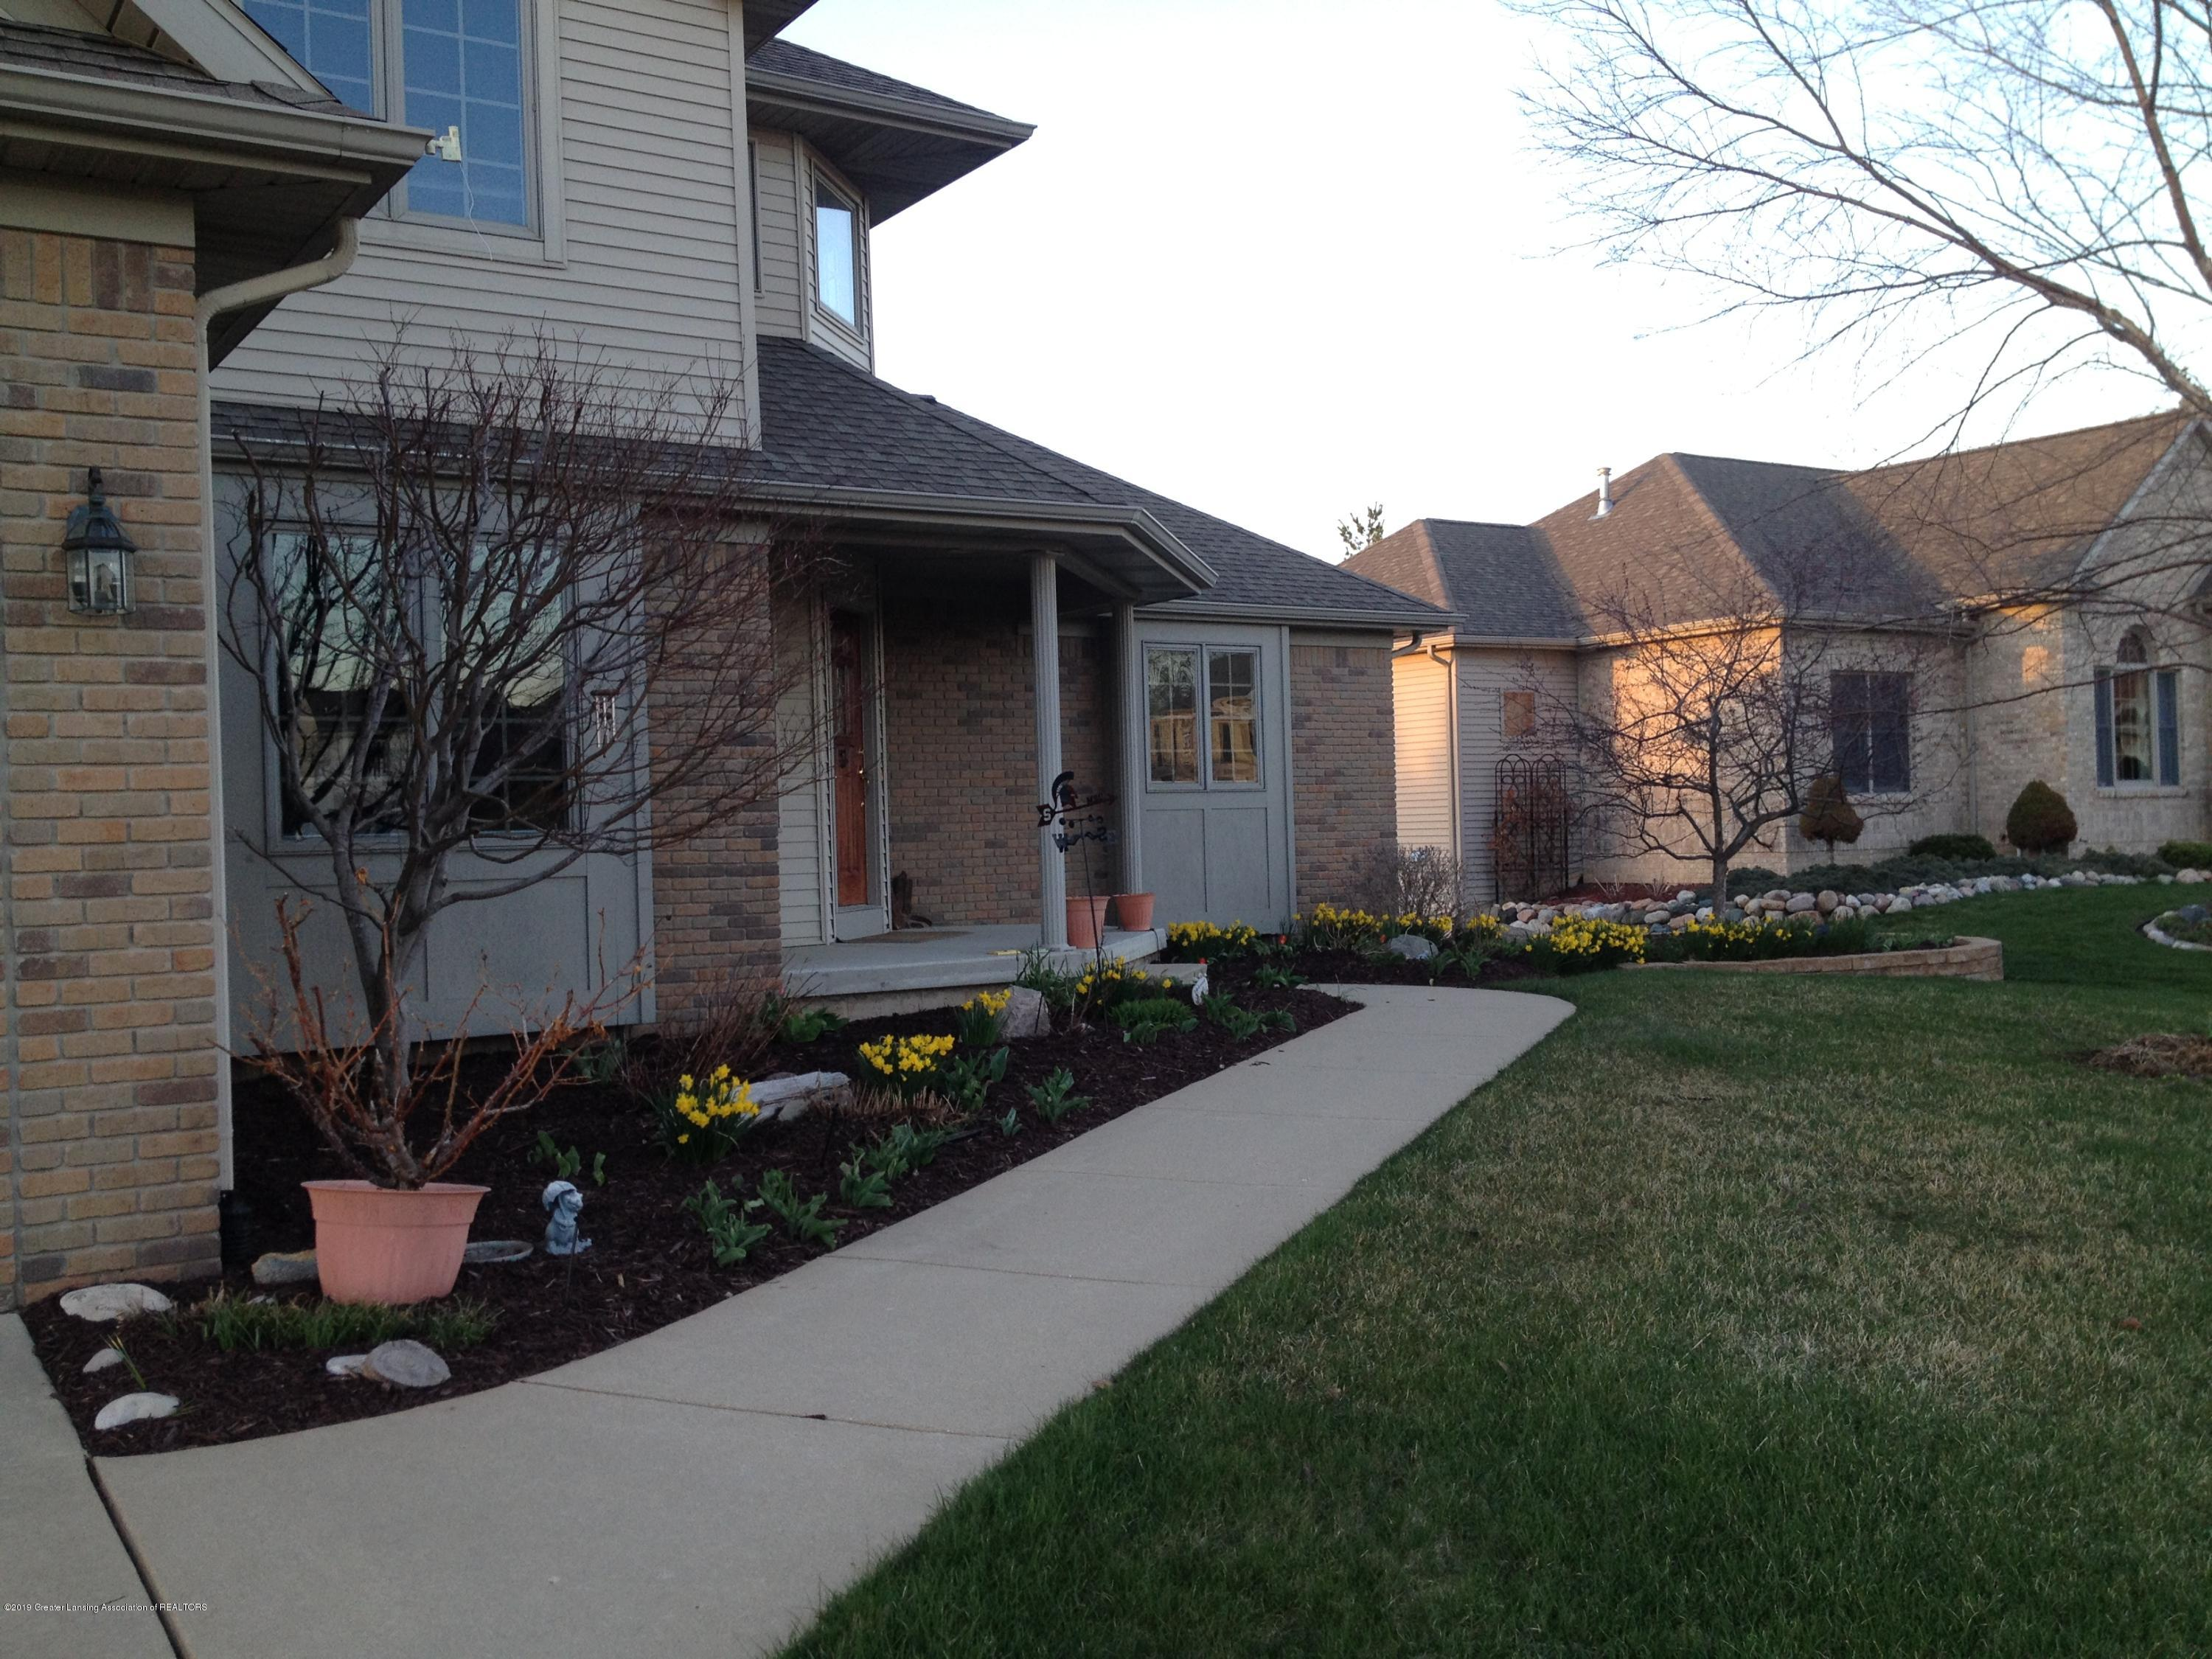 7387 Mallow Ln - 2014 04-26 Home with Daffodils (1) - 51